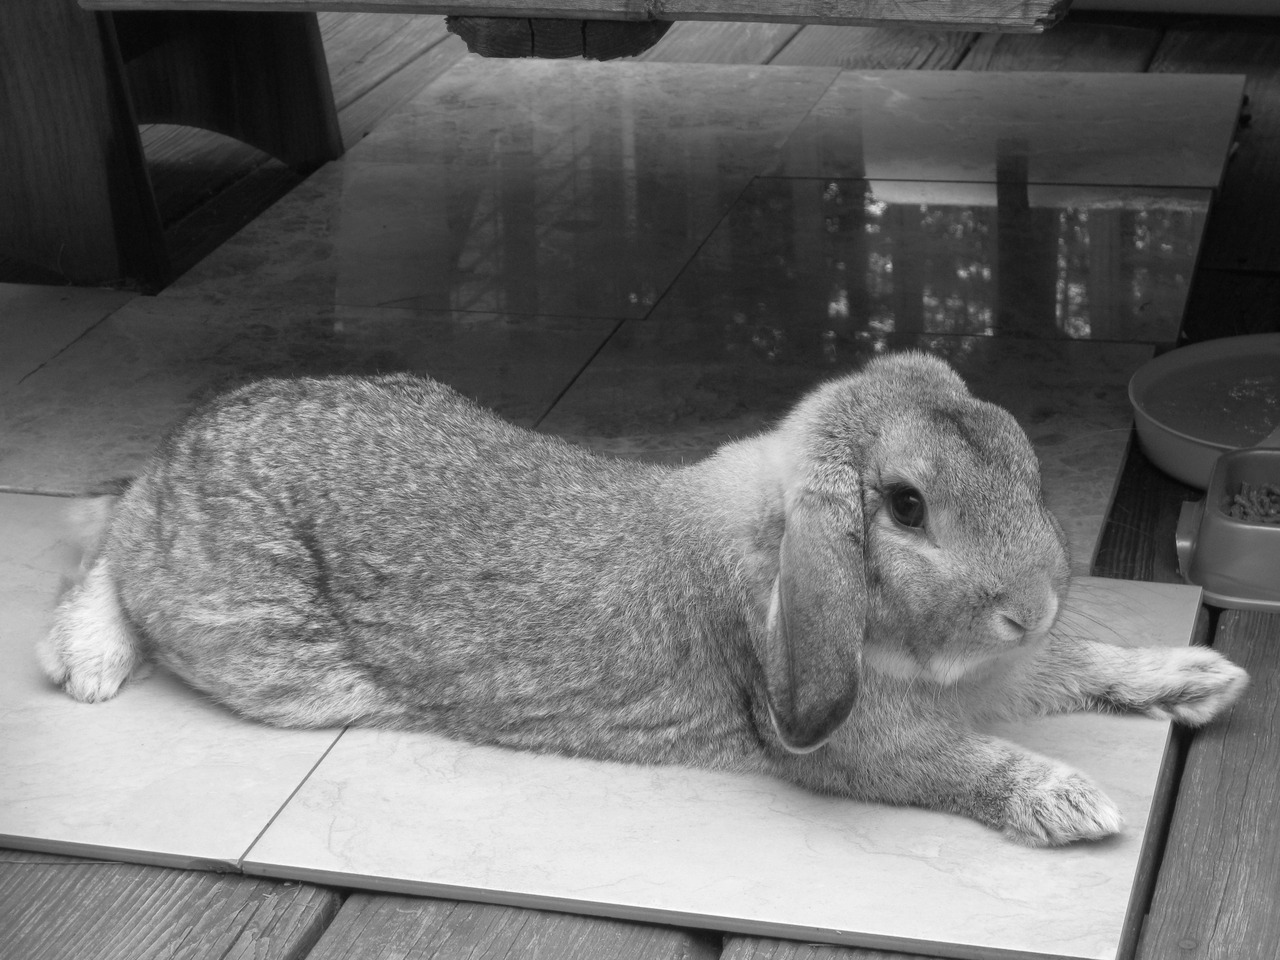 Bunny Cools Down on Marble Tiles